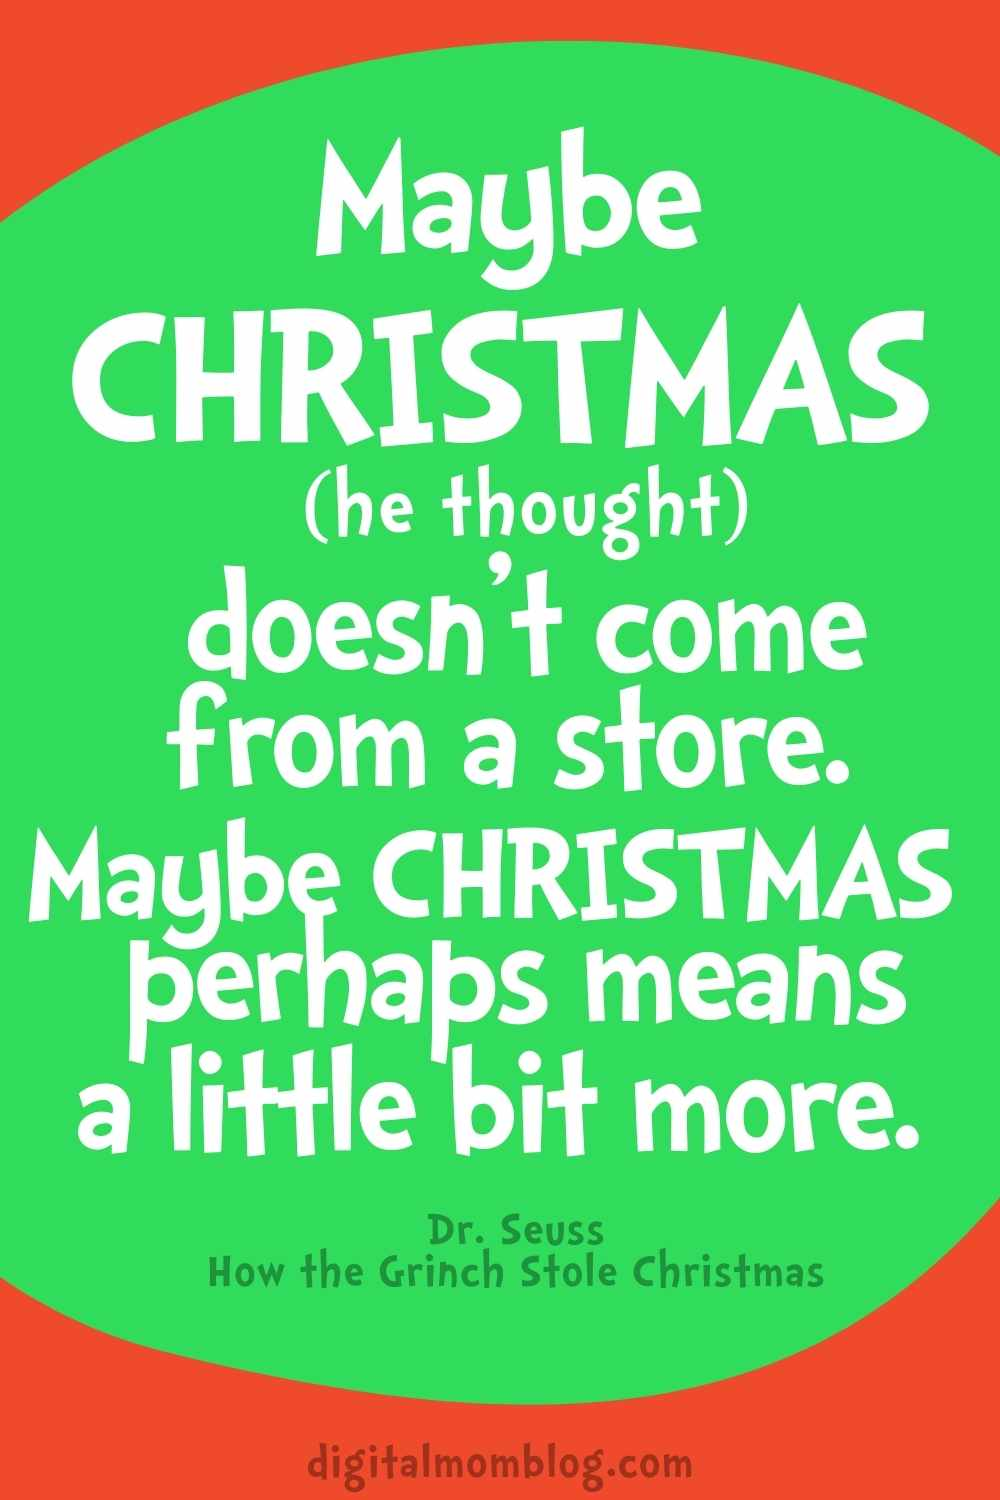 Maybe Christmas he thought doesn't come from a store maybe Christmas means a little bit more dr seuss quote for kids grinch stole Christmas